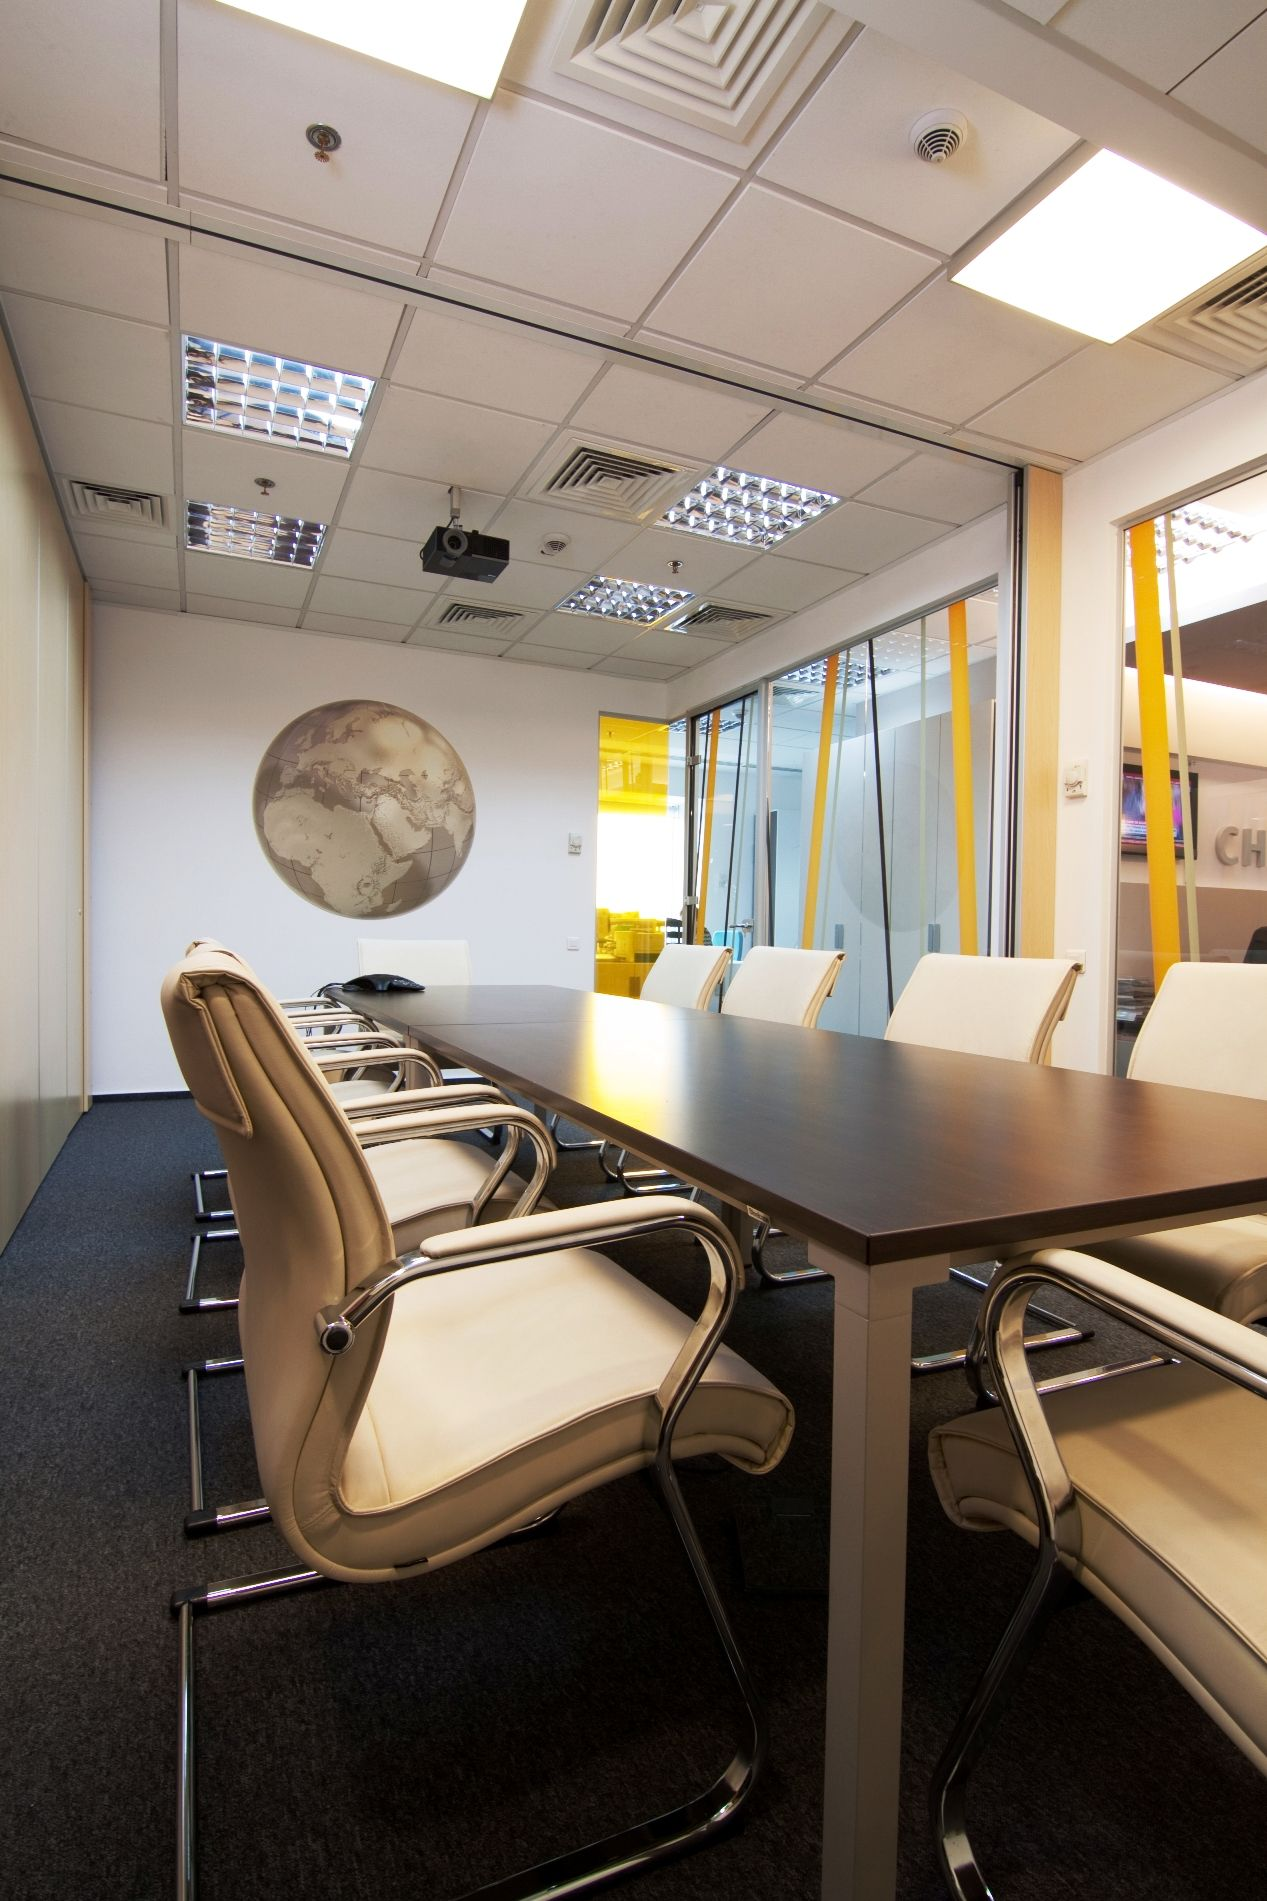 Conference Room Interior Design: Chartis Meeting Room #office #interior #design